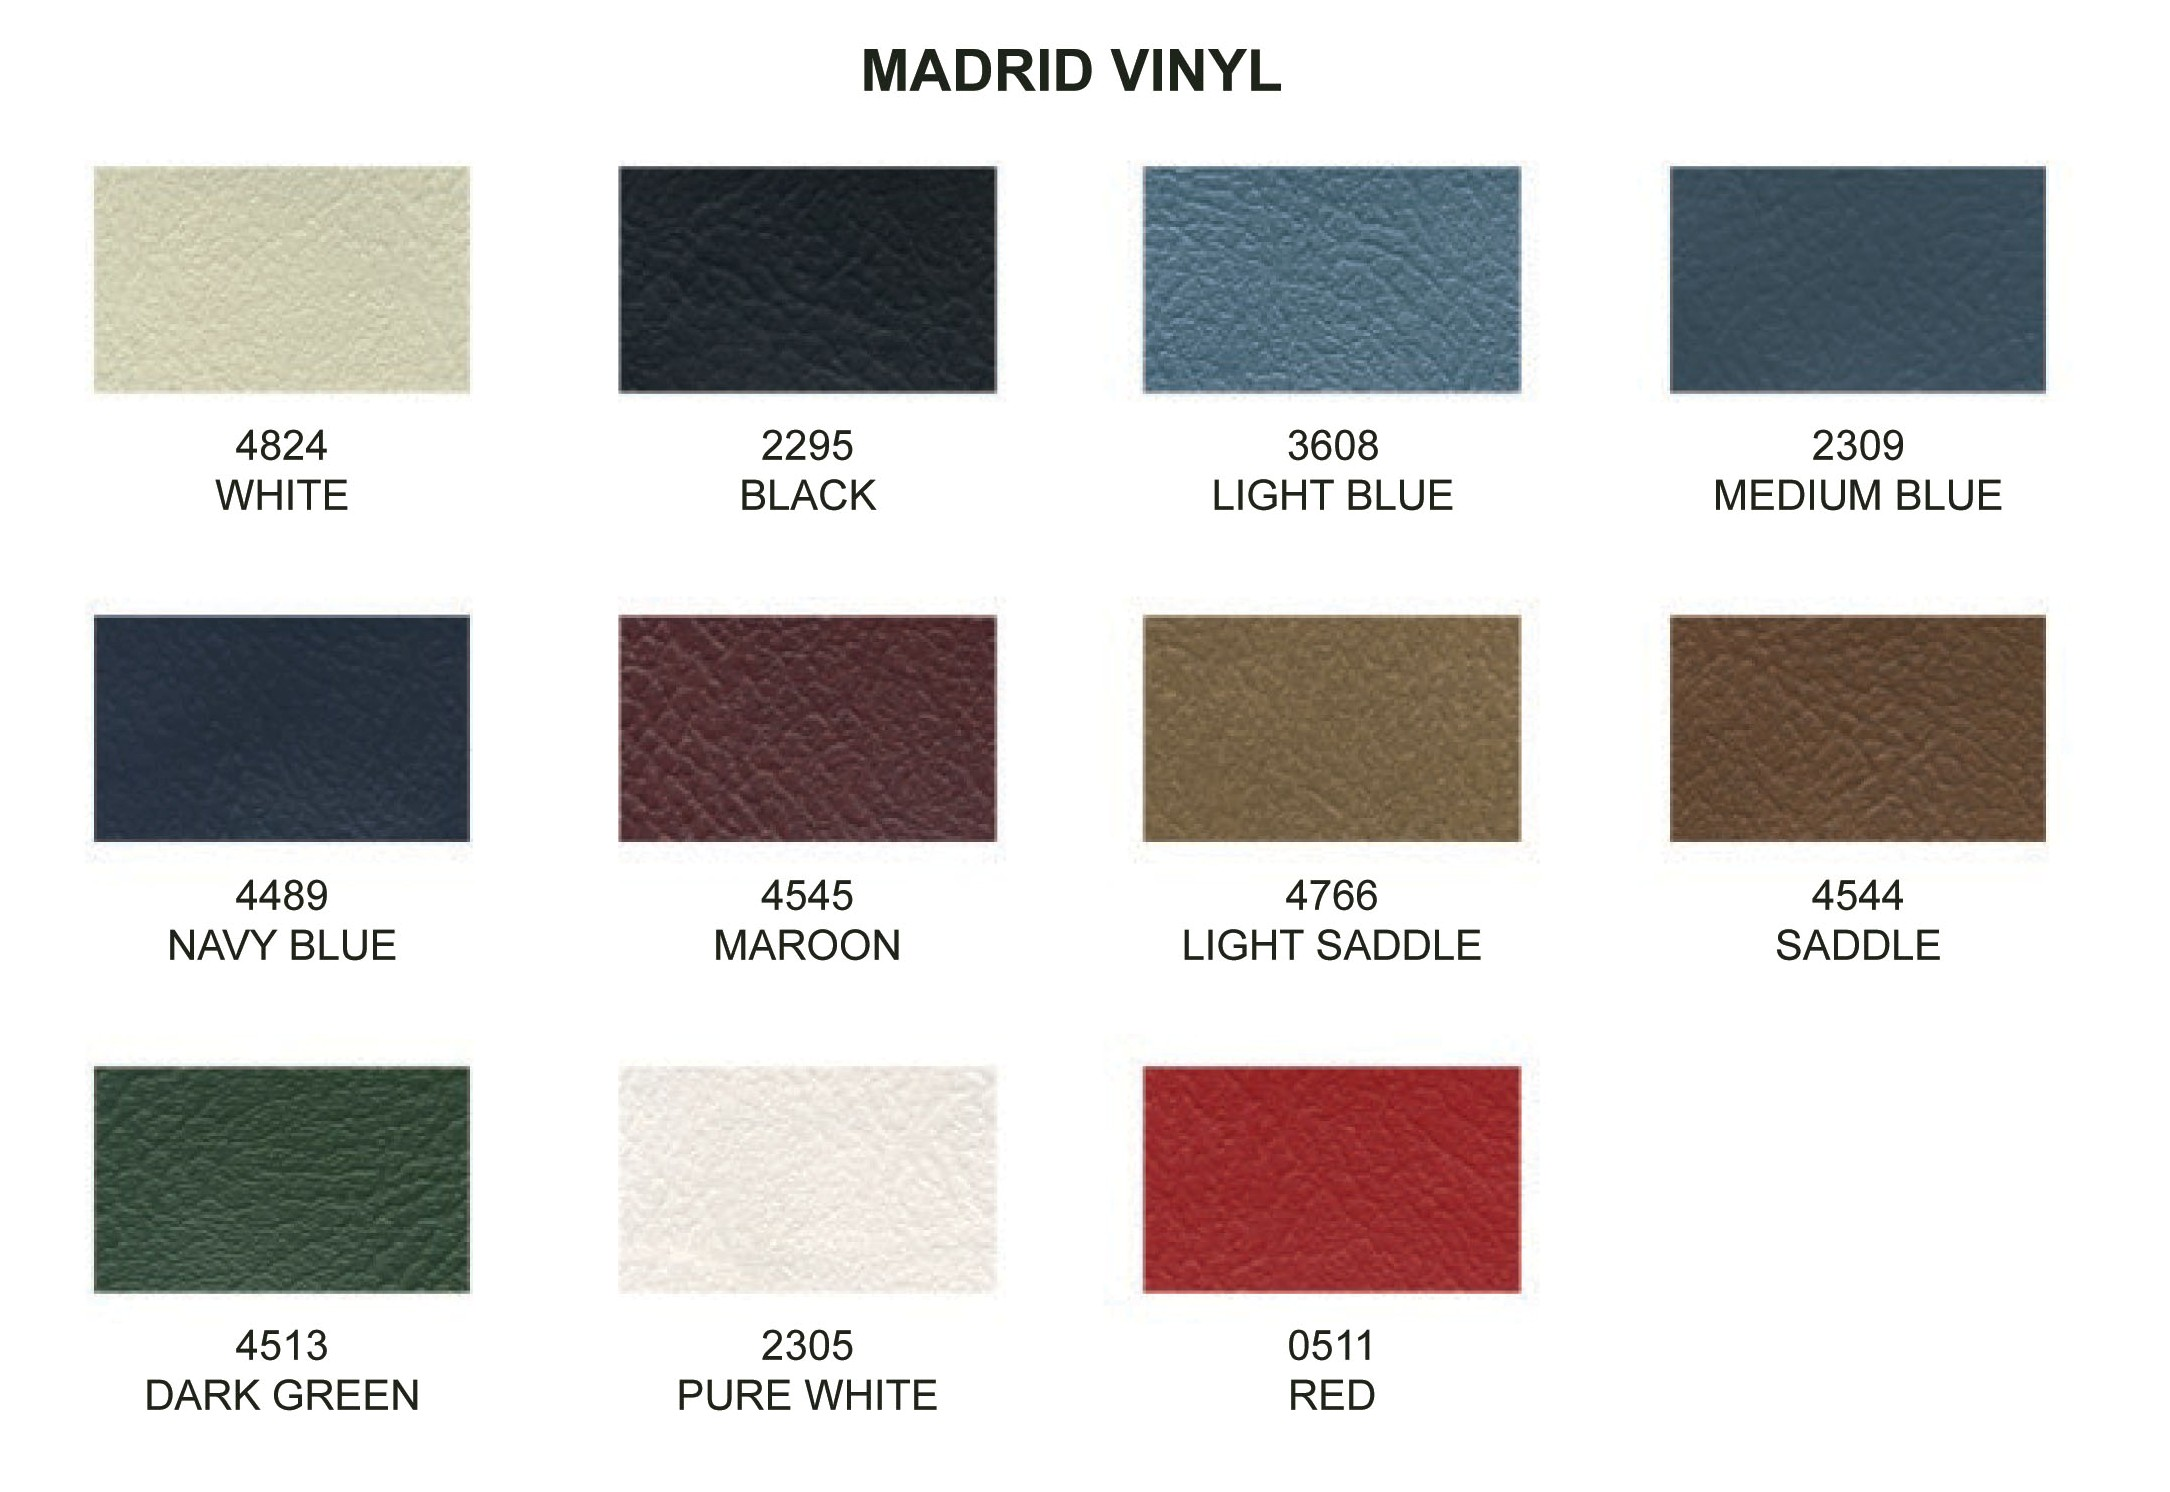 Madrid Vinyl One Yard Used For Convertible Top Boot Or